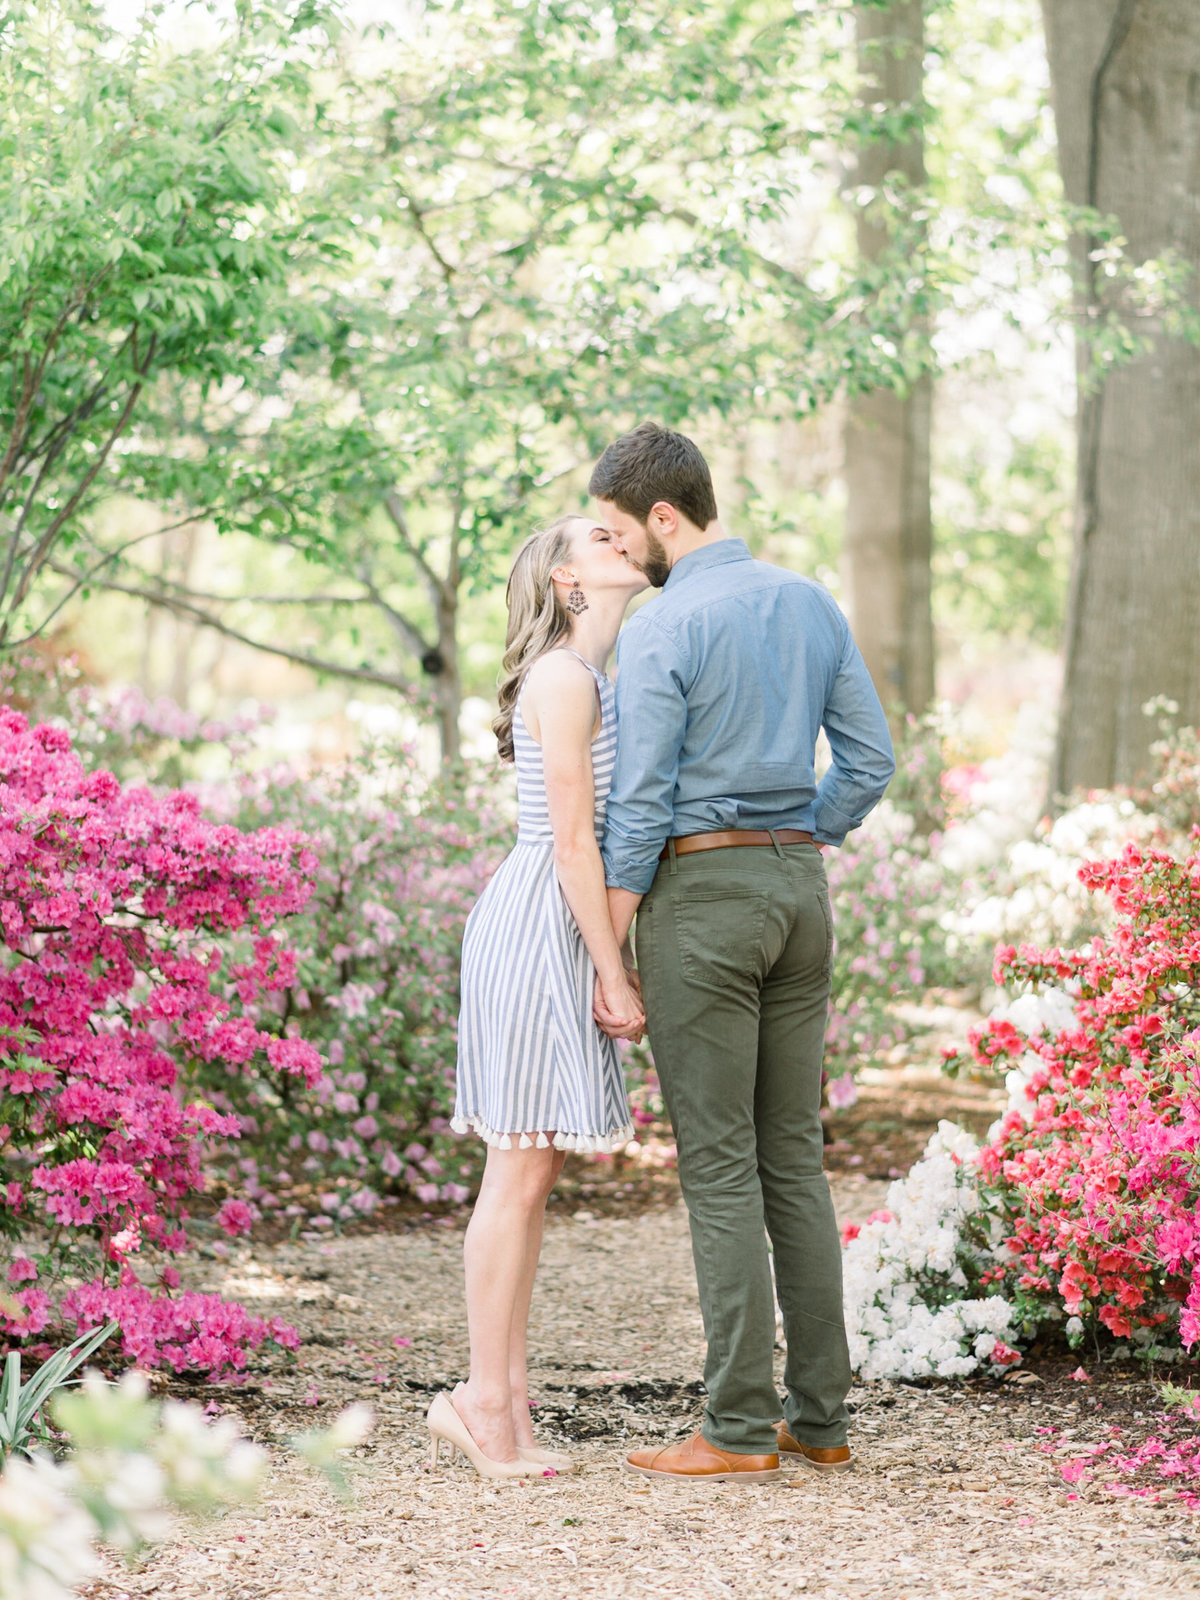 Courtney Hanson Photography - Dallas Spring Engagement Photos at Dallas Arboretum-2672